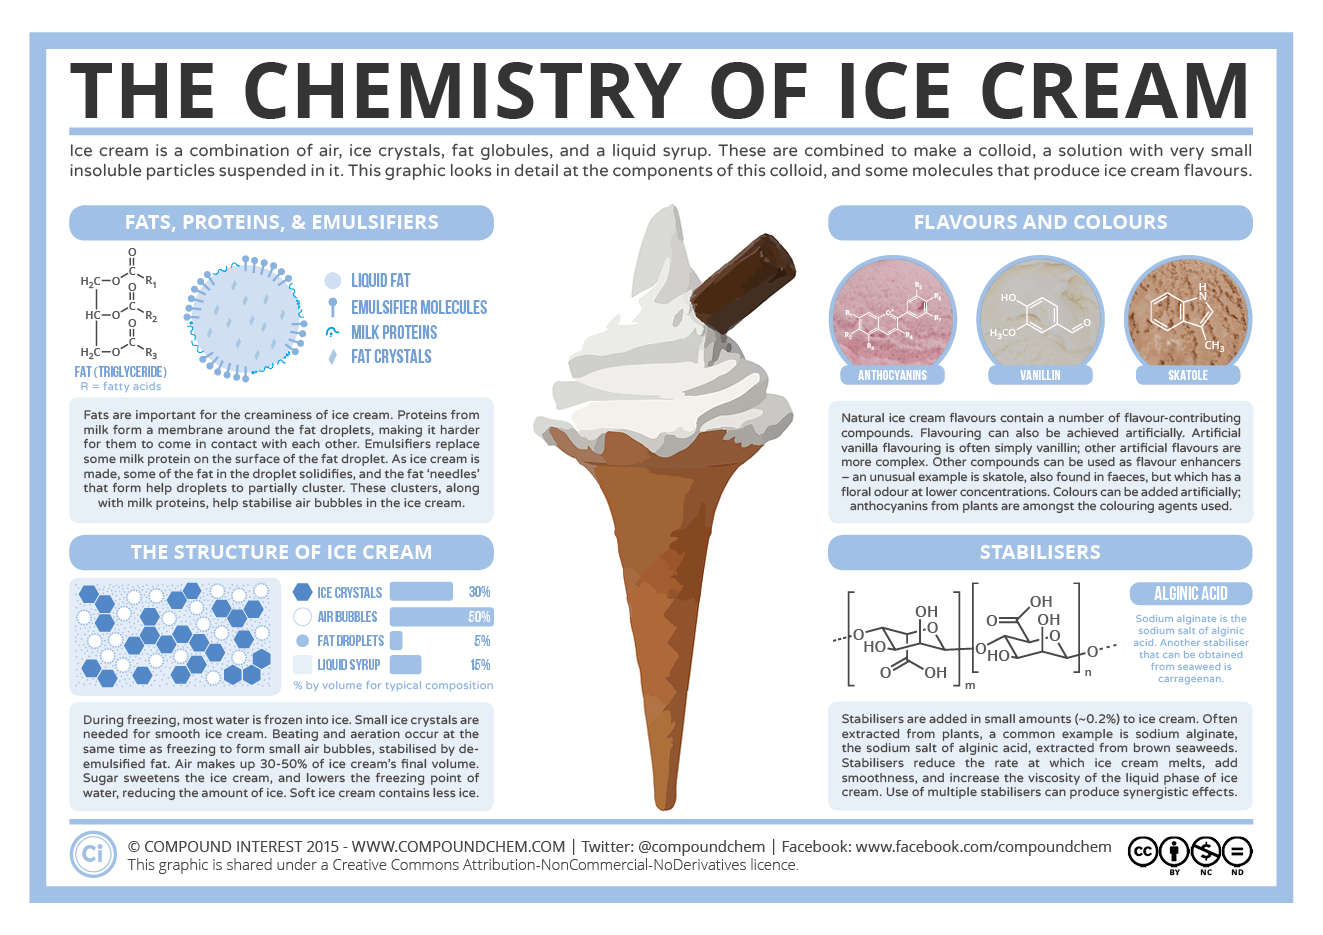 the chemistry of ice cream components structure flavour compound interest. Black Bedroom Furniture Sets. Home Design Ideas